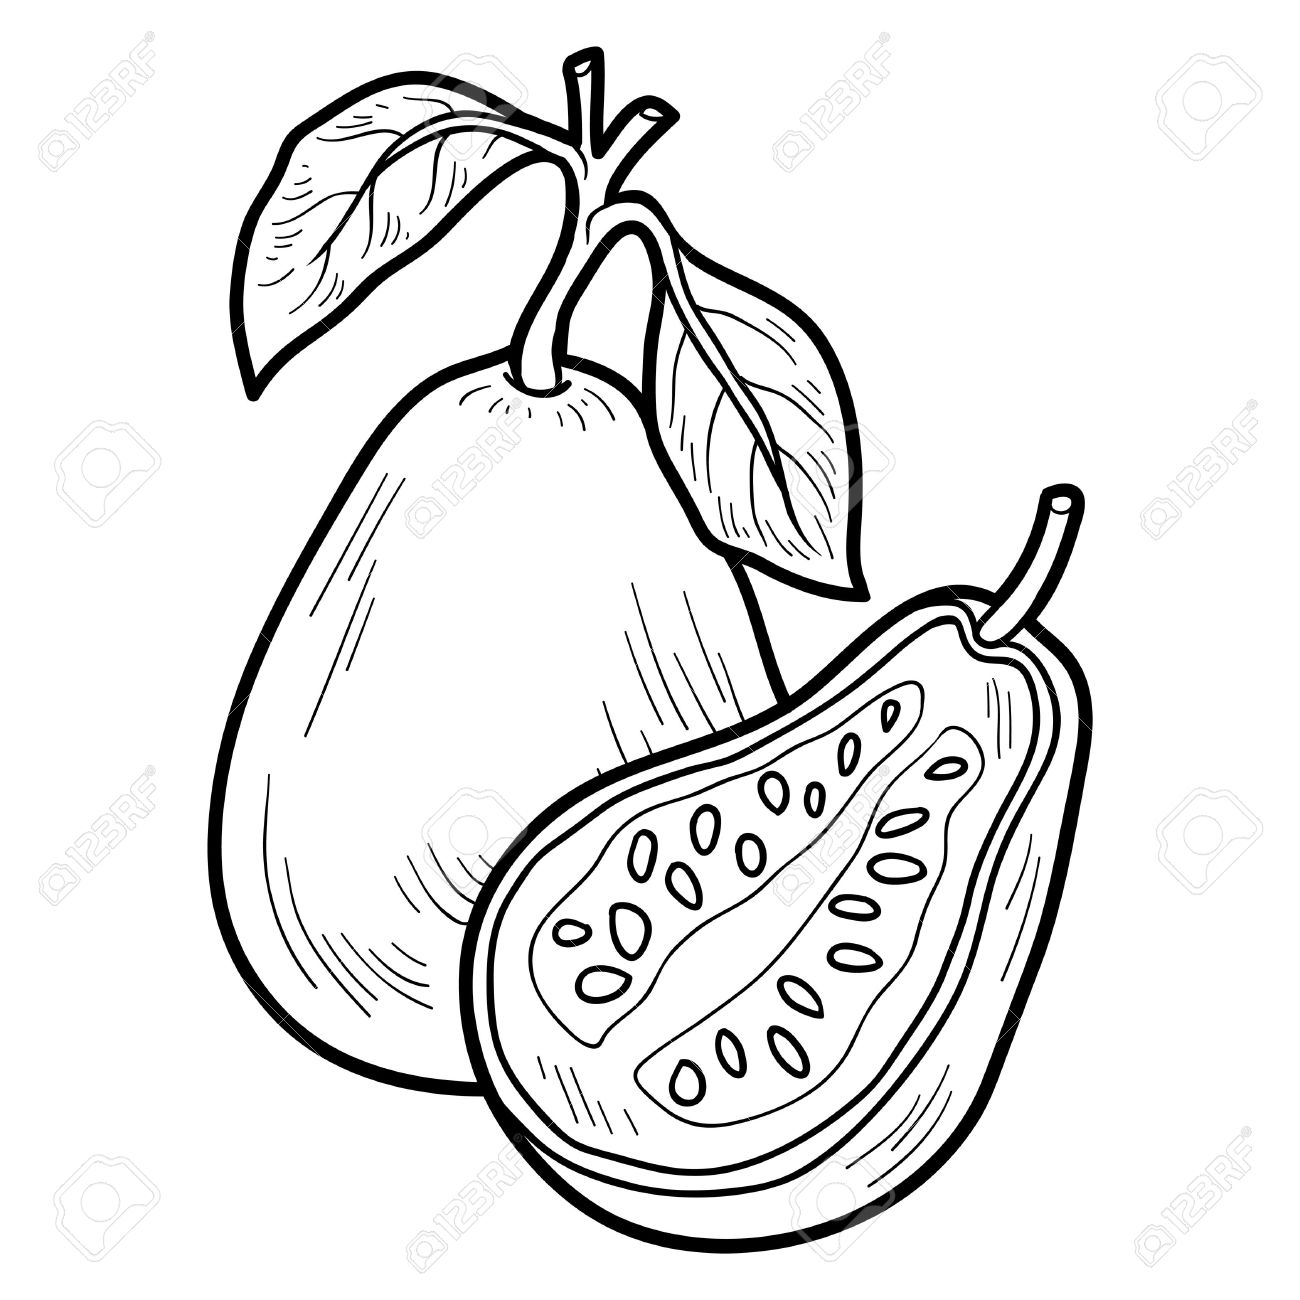 Coloring Book For Children Fruits And Vegetables Guava Stock Vector